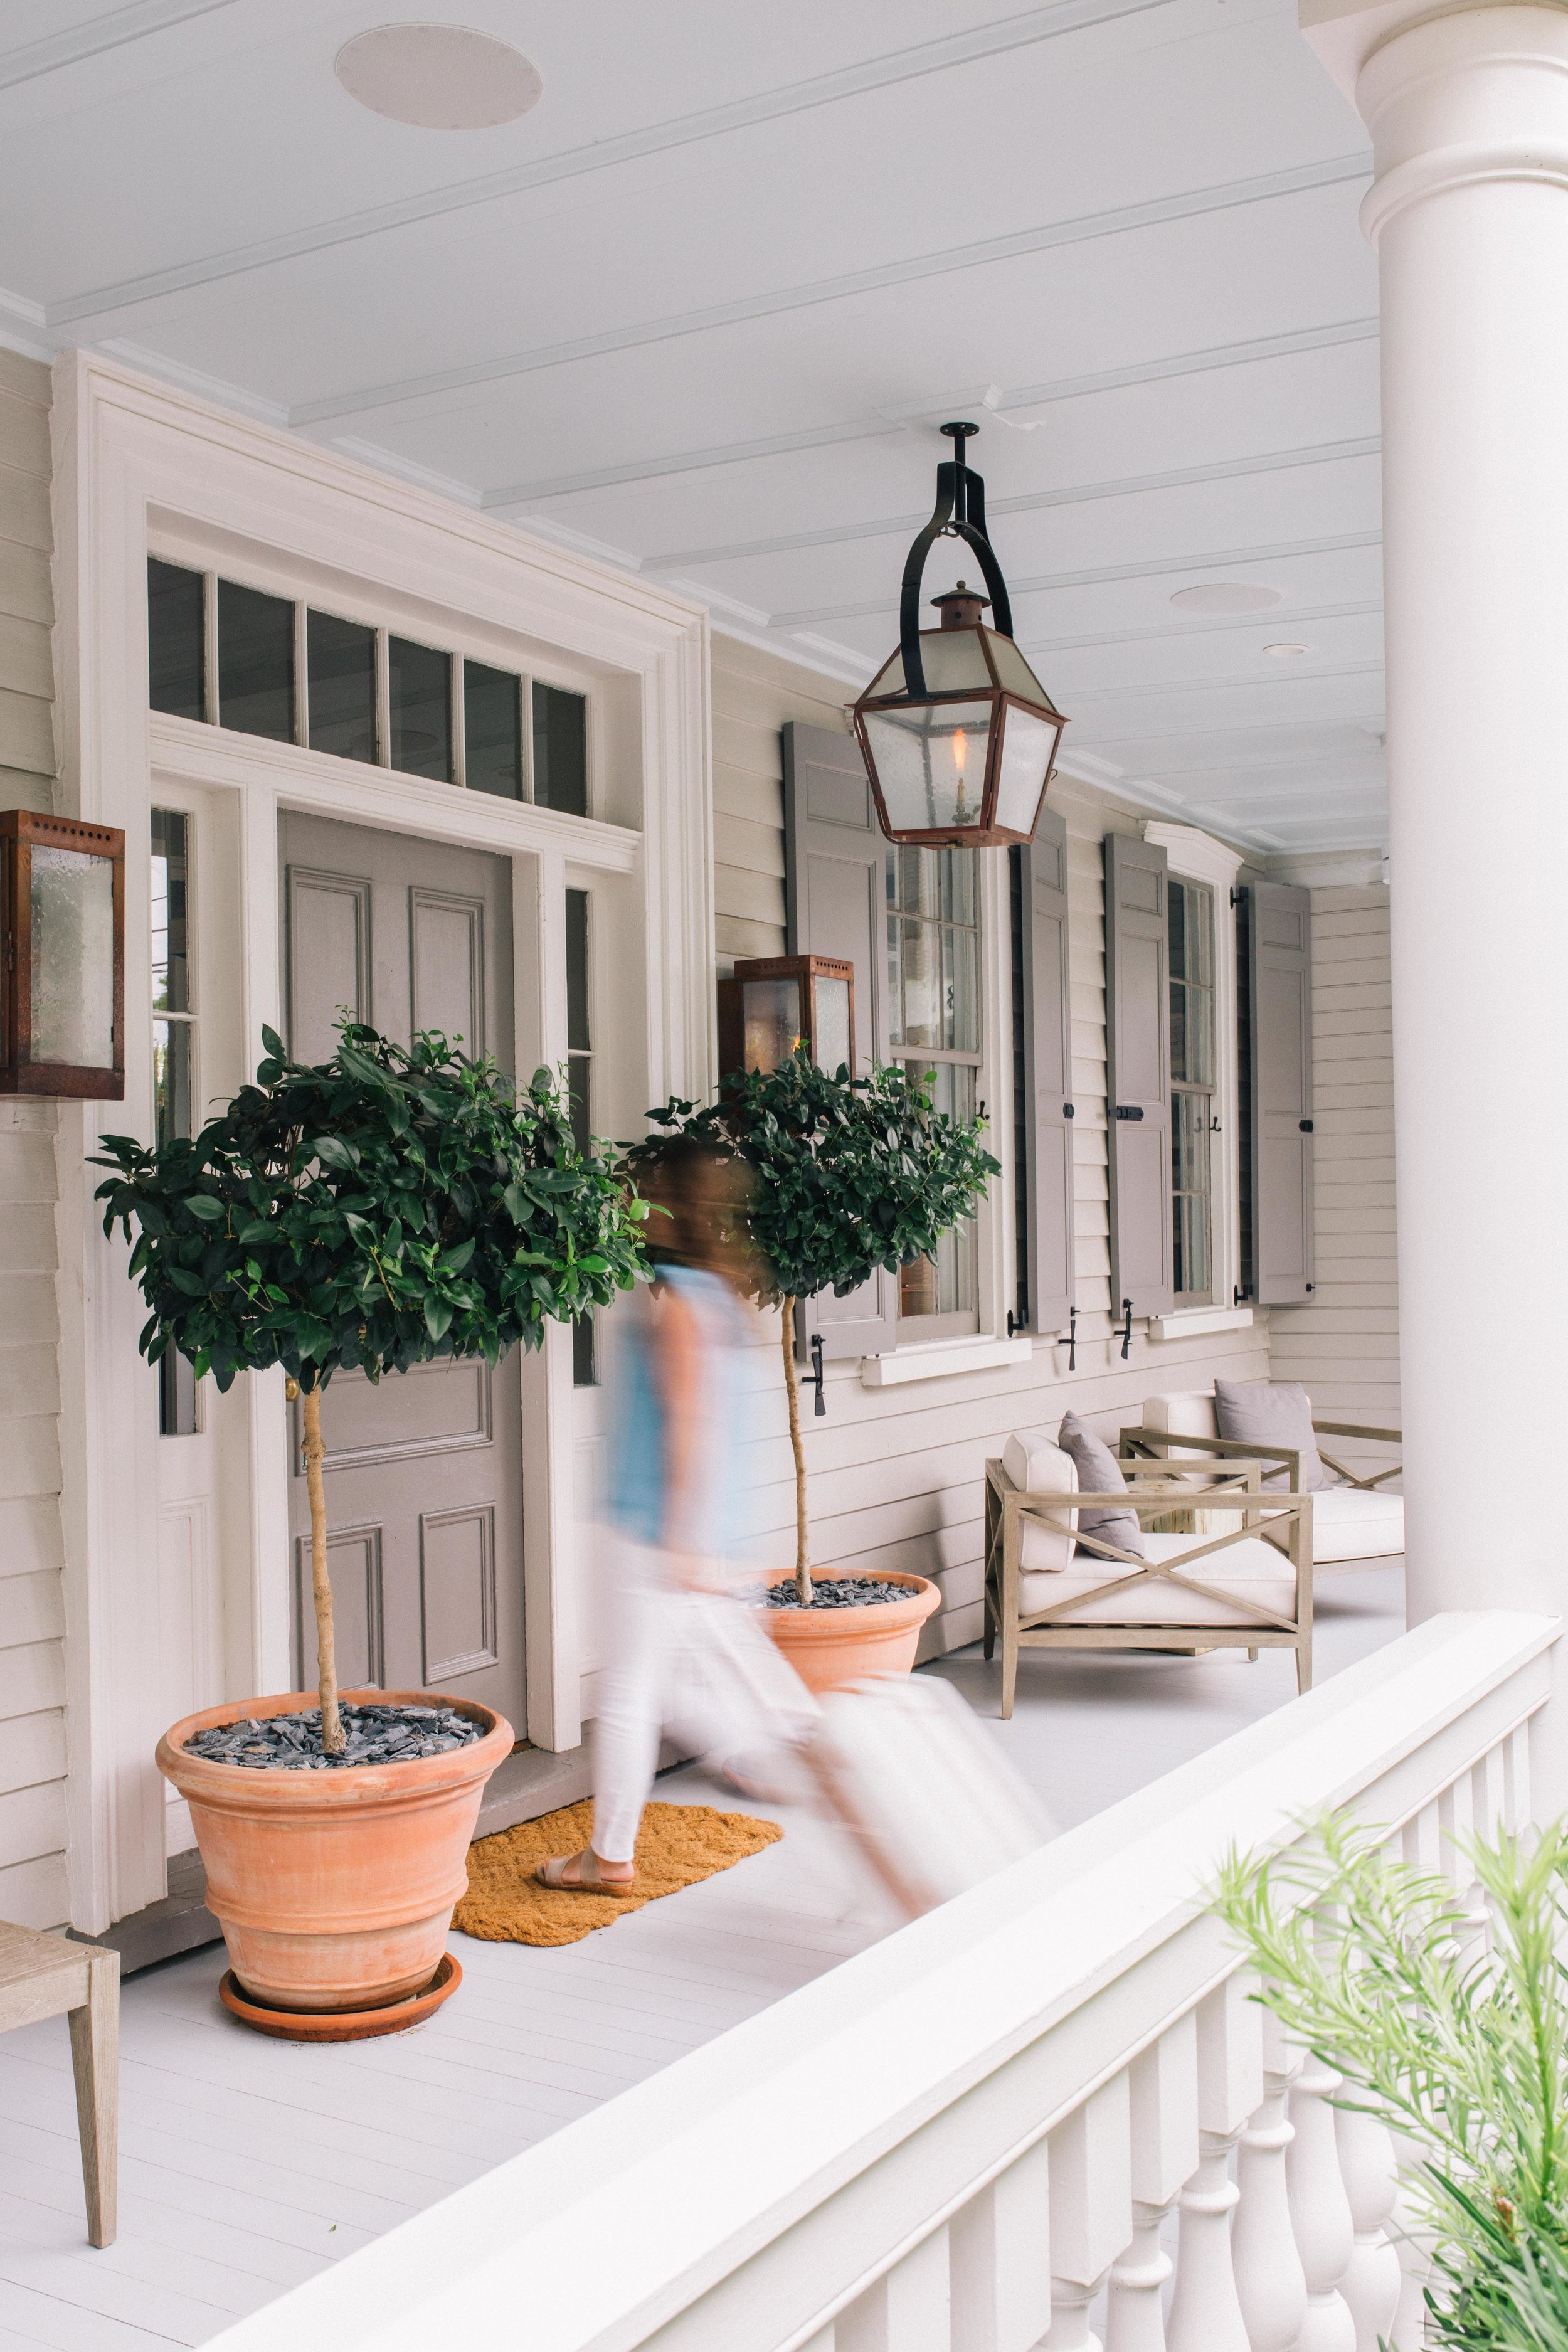 Welcome - LCS Studio is founded by Laura Saur, a lifestyle and brand photographer specializing in natural light photography for fashion, food, and travel brands.Based in Charleston, SC